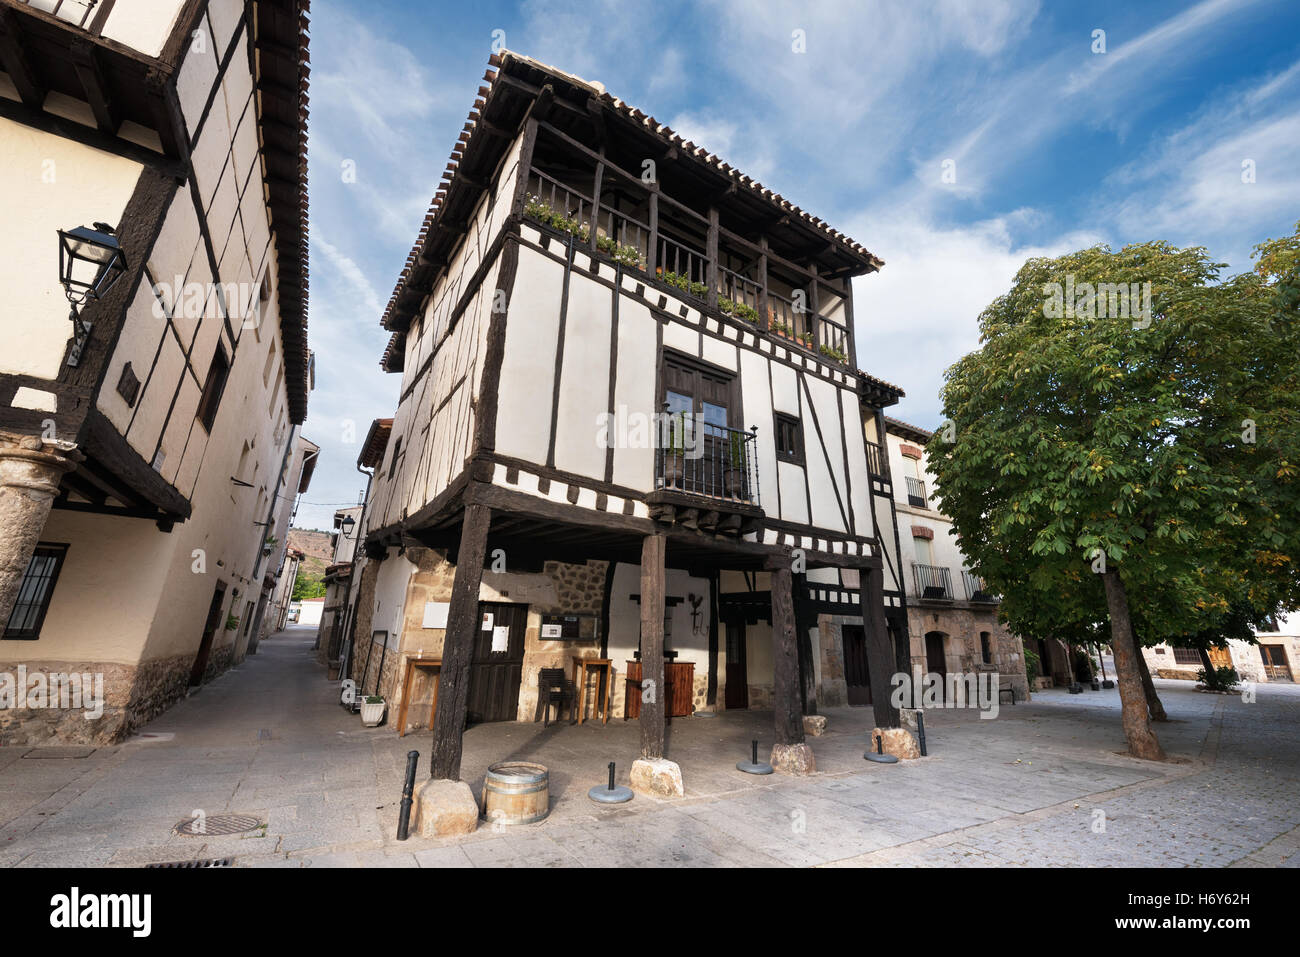 Ancient medieval buildings in the ancient city of Covarrubias, Burgos, Spain - Stock Image